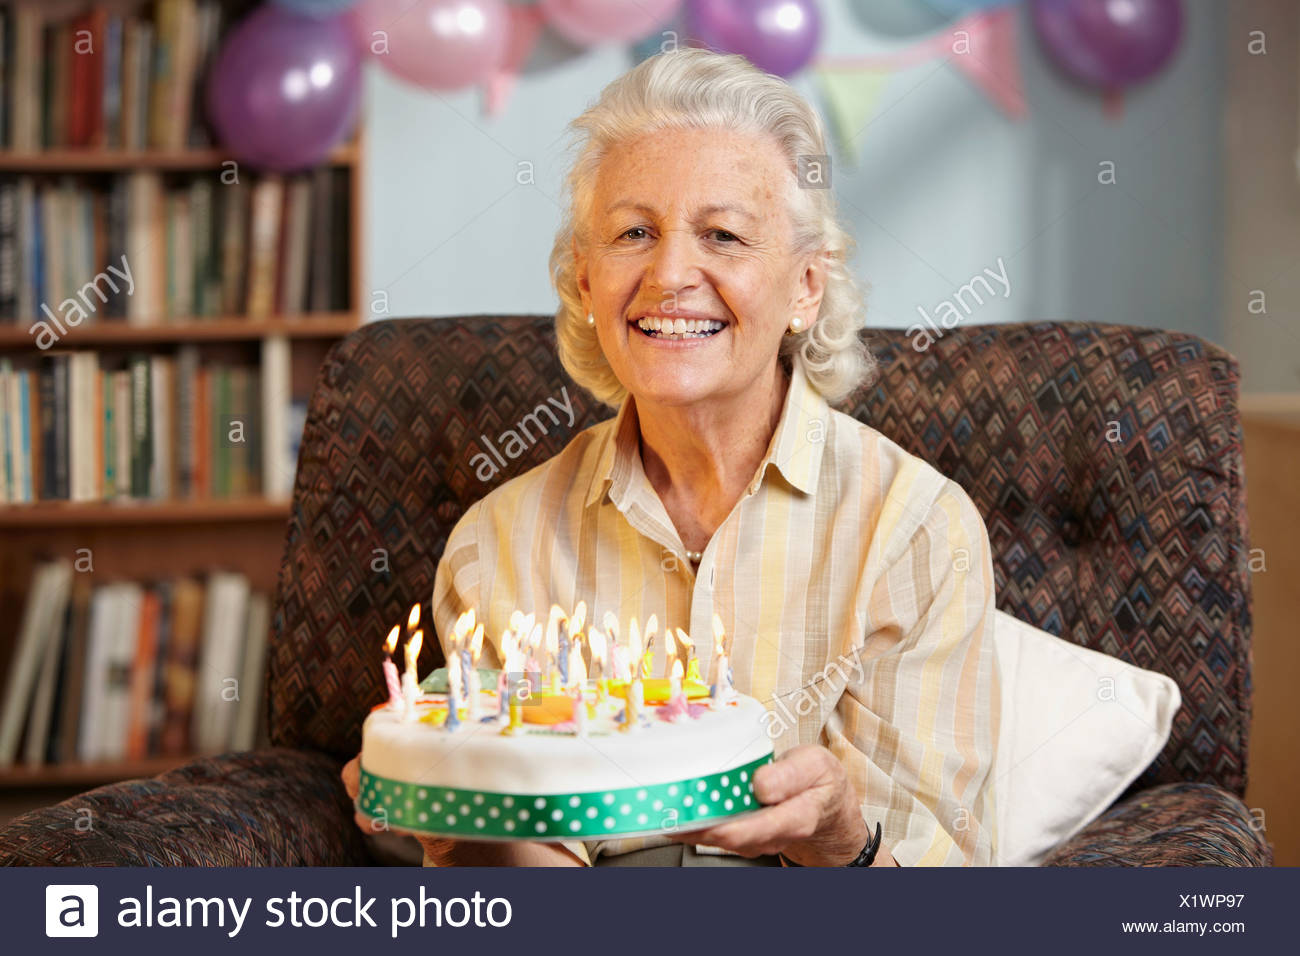 Awesome Senior Woman Holding Birthday Cake Portrait Stock Photo Birthday Cards Printable Benkemecafe Filternl